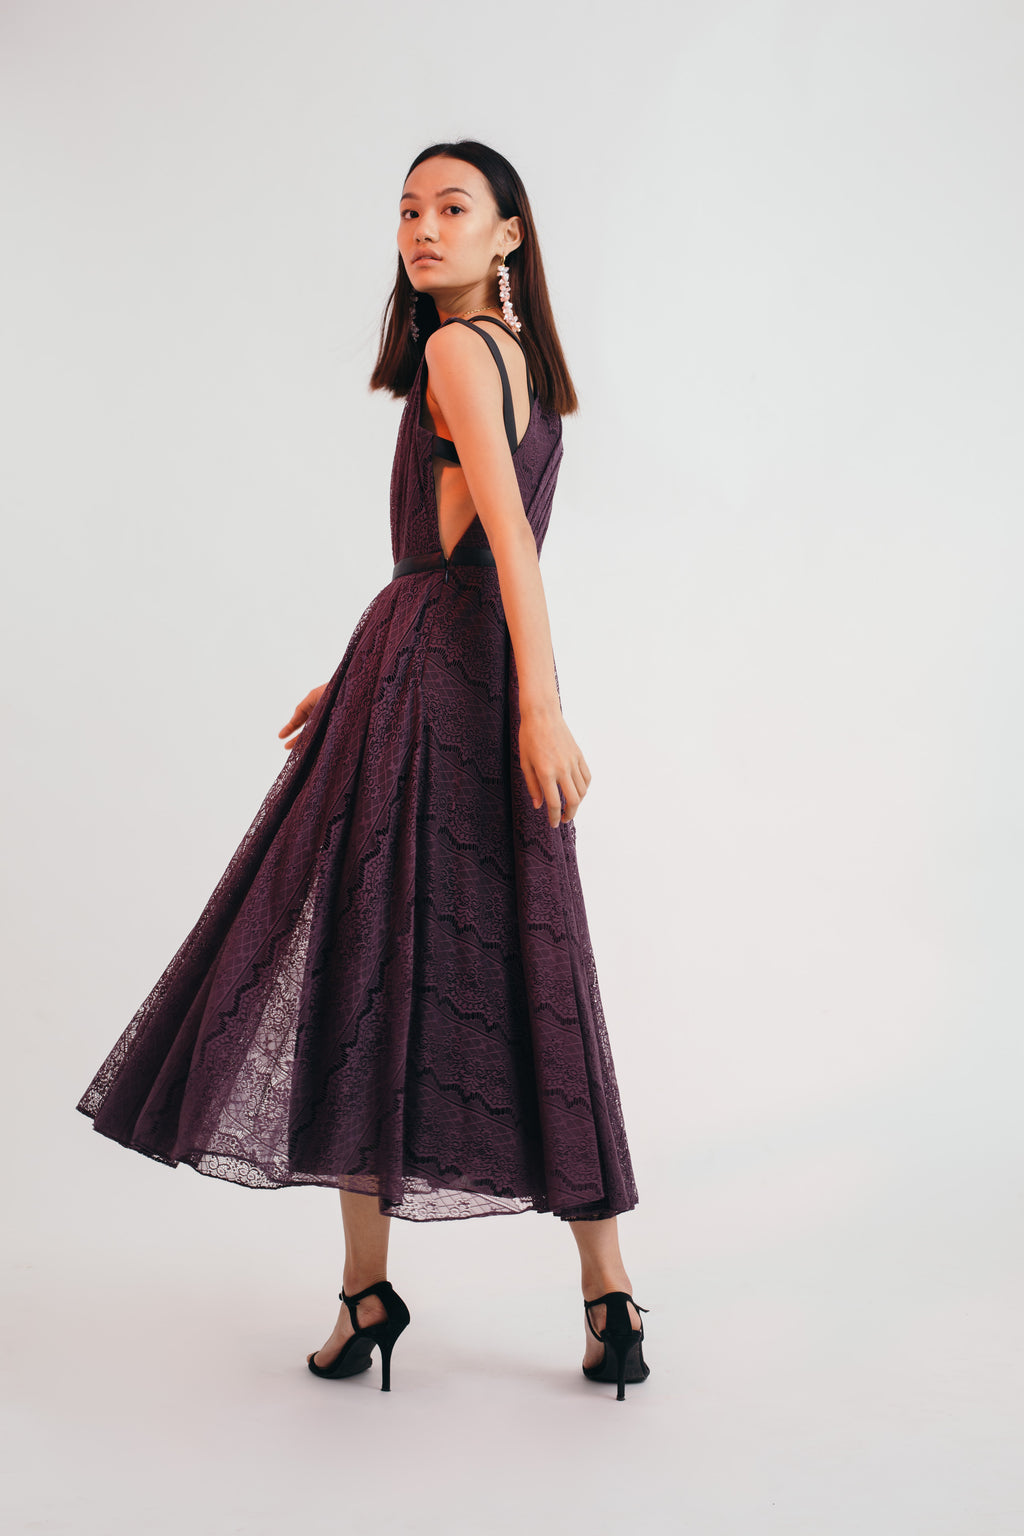 Blackcurrant Across The Floor Dress SMALL/MEDIUM - Bhaavya Bhatnagar